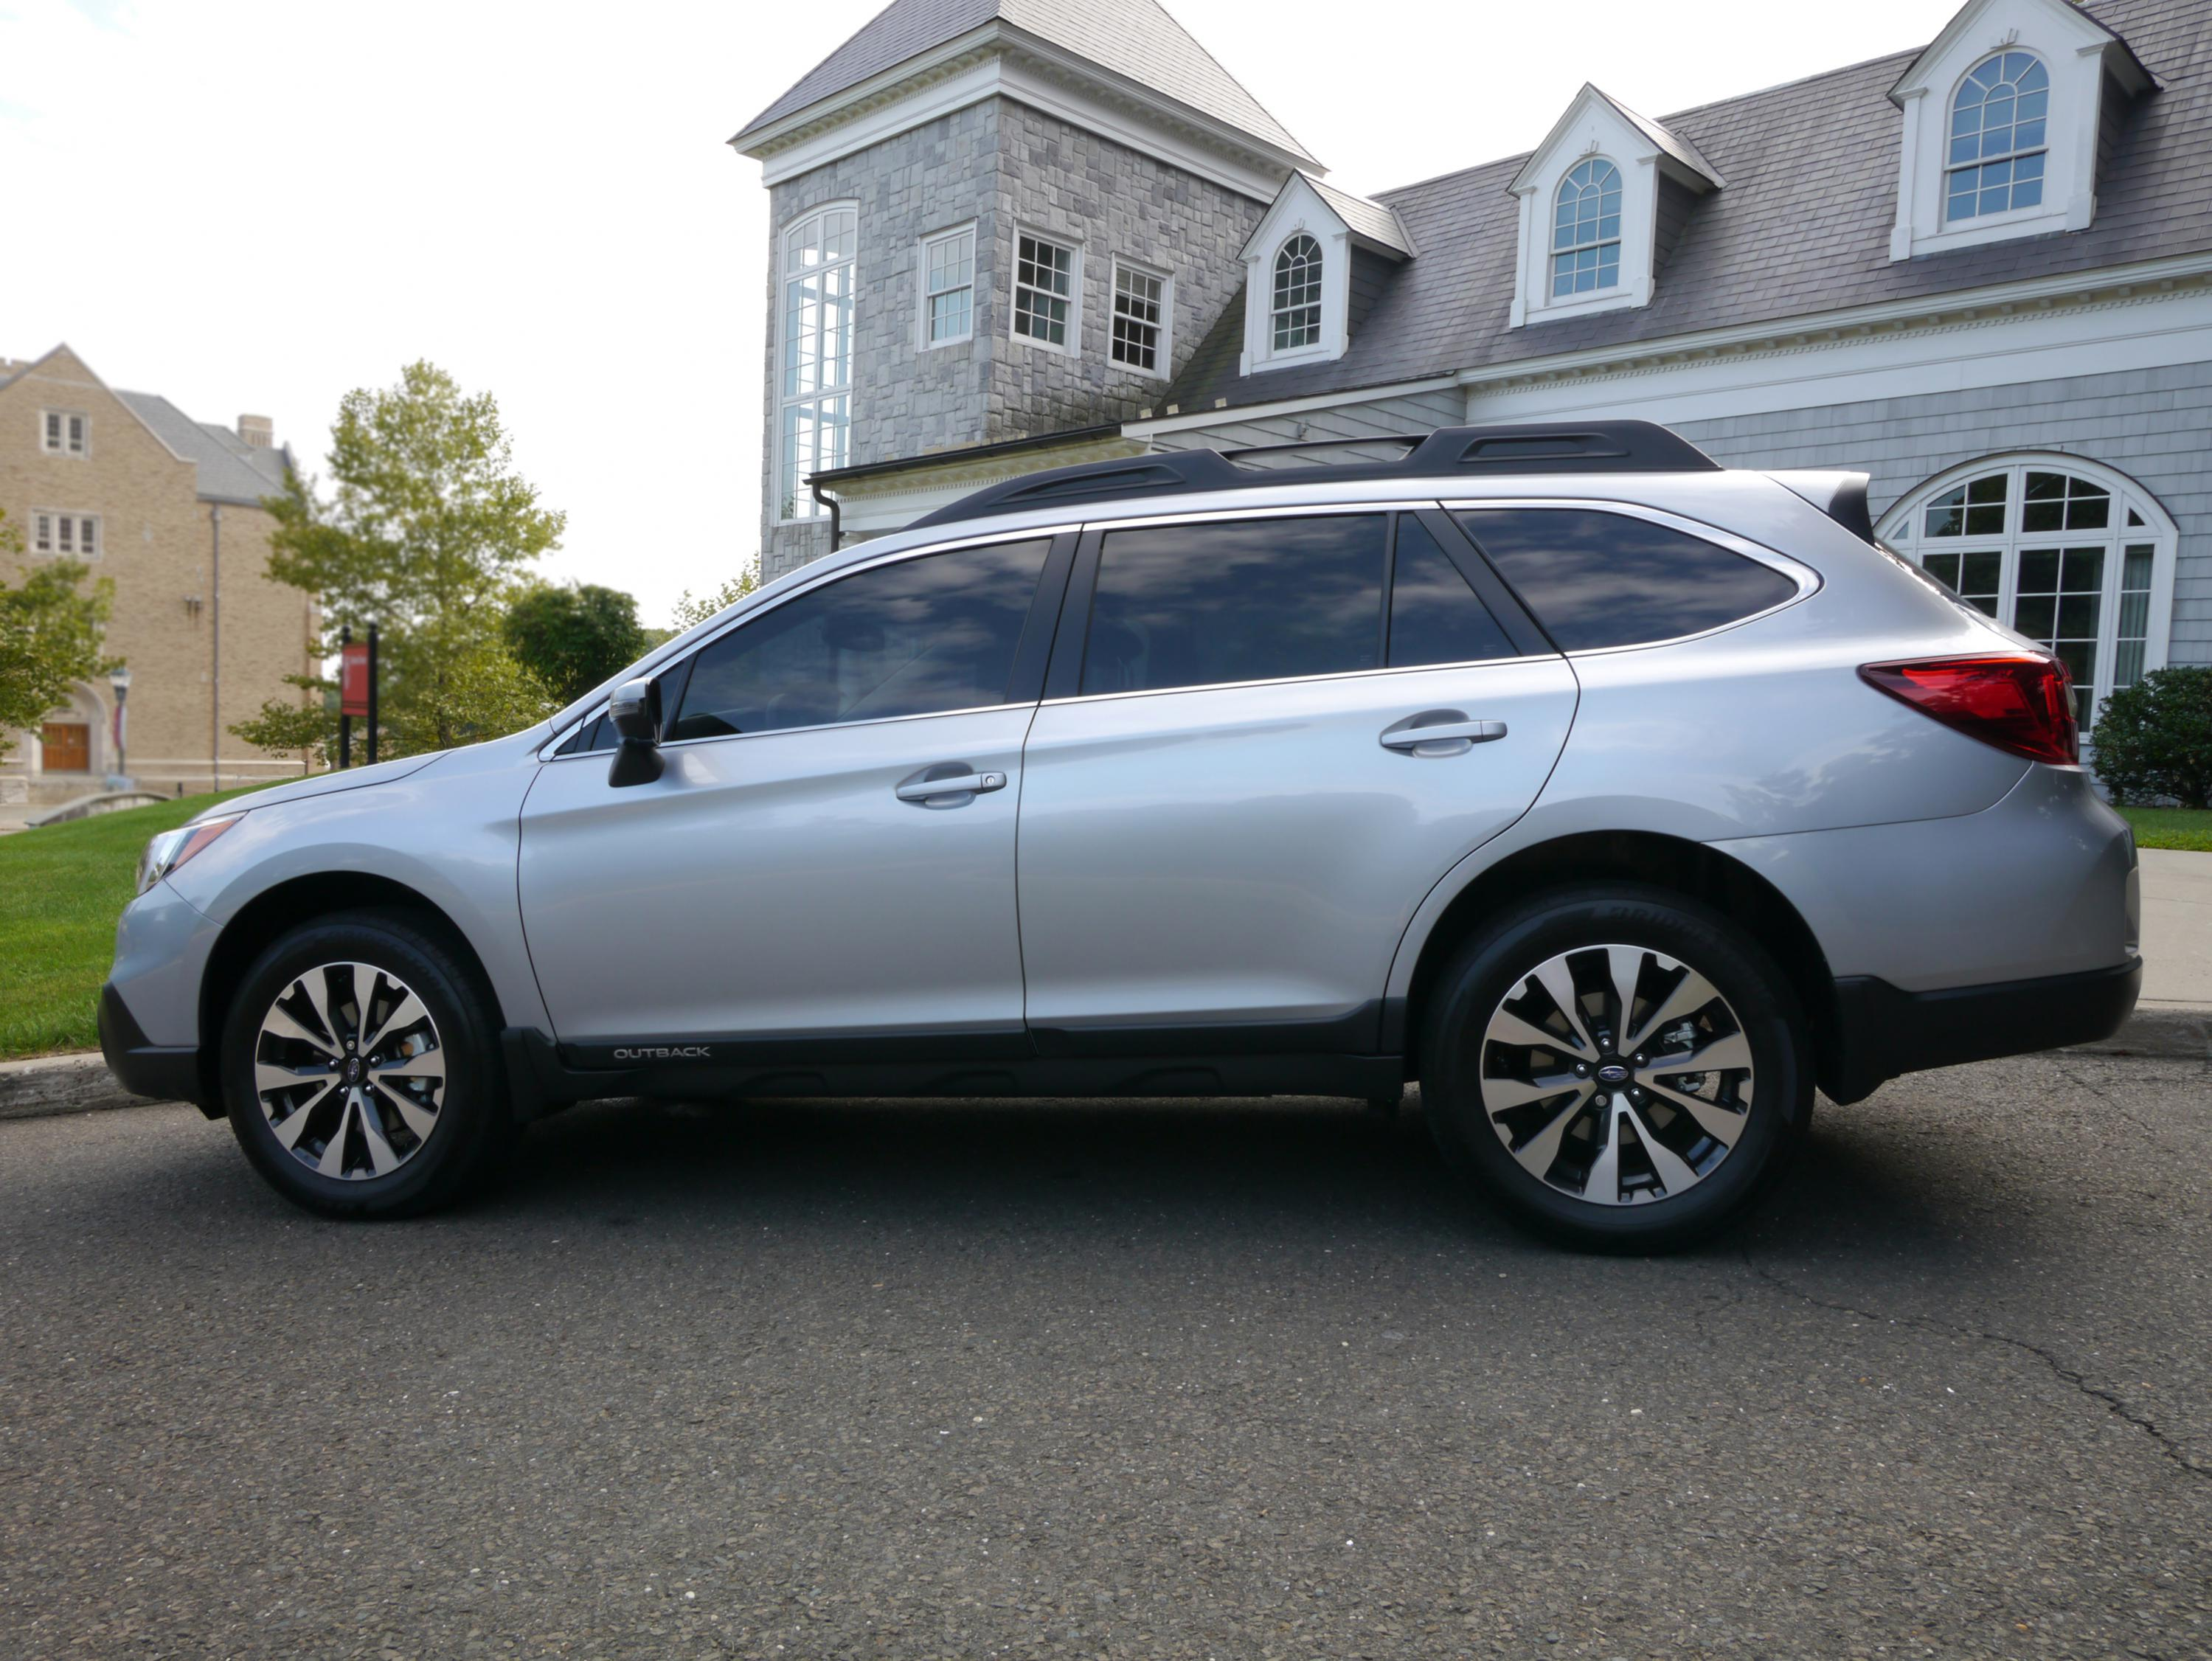 Post pics of your 5th gen outback page 24 subaru outback post pics of your 5th gen outback page 24 subaru outback subaru outback forums vanachro Image collections